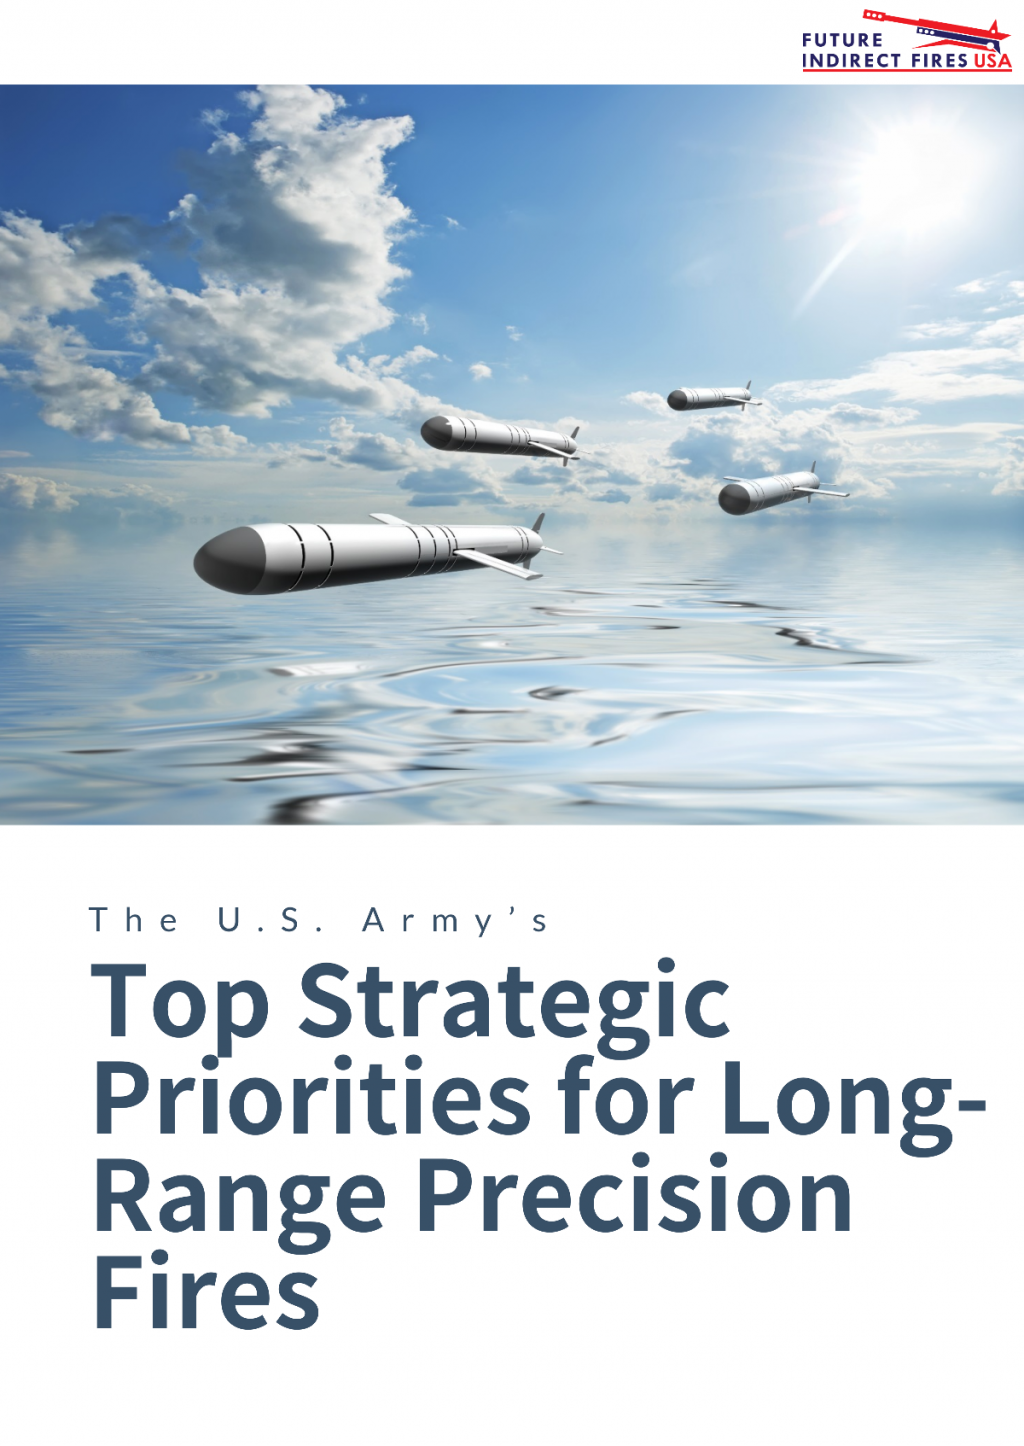 The Army's Top 3 Strategic Priorities for Long-Range Precision Fires